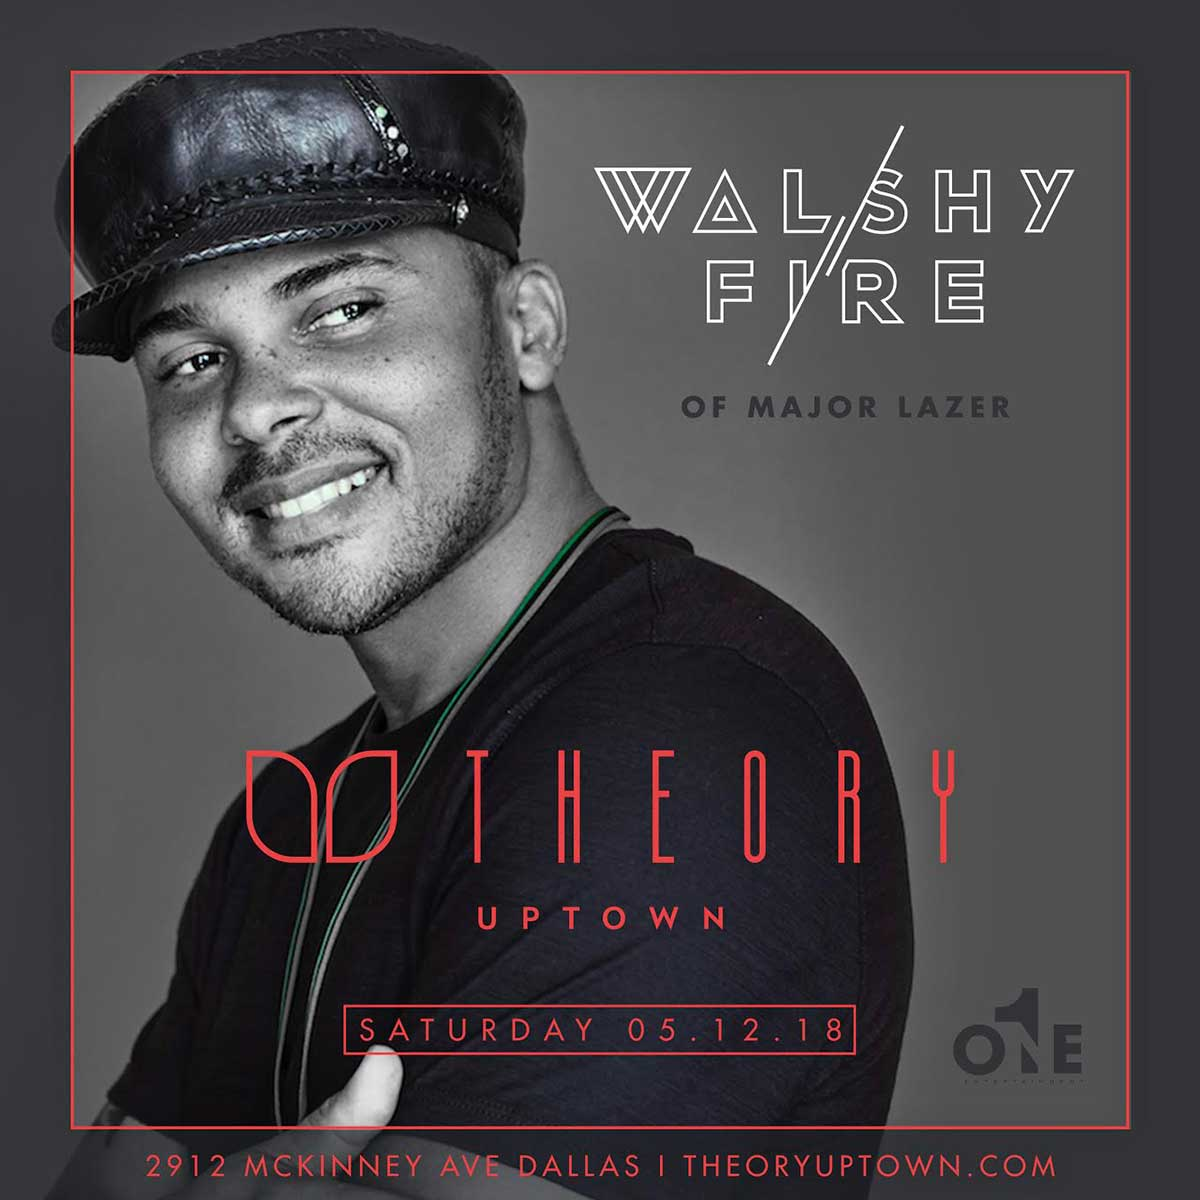 Walshy Fire of Major Lazer